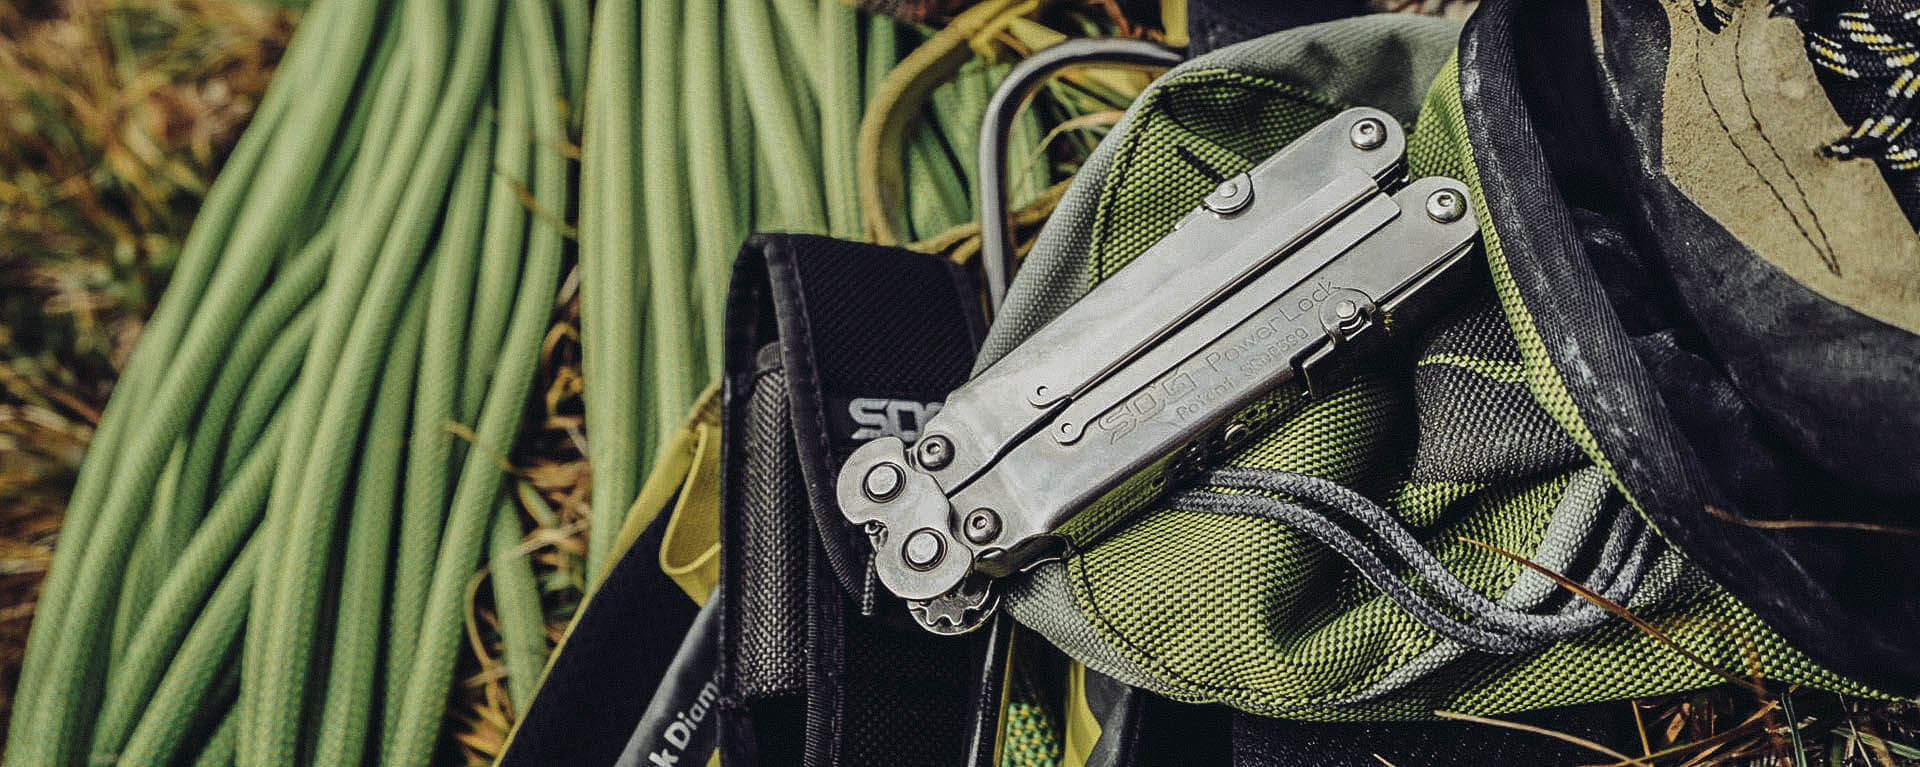 Outdoor Multi Tools